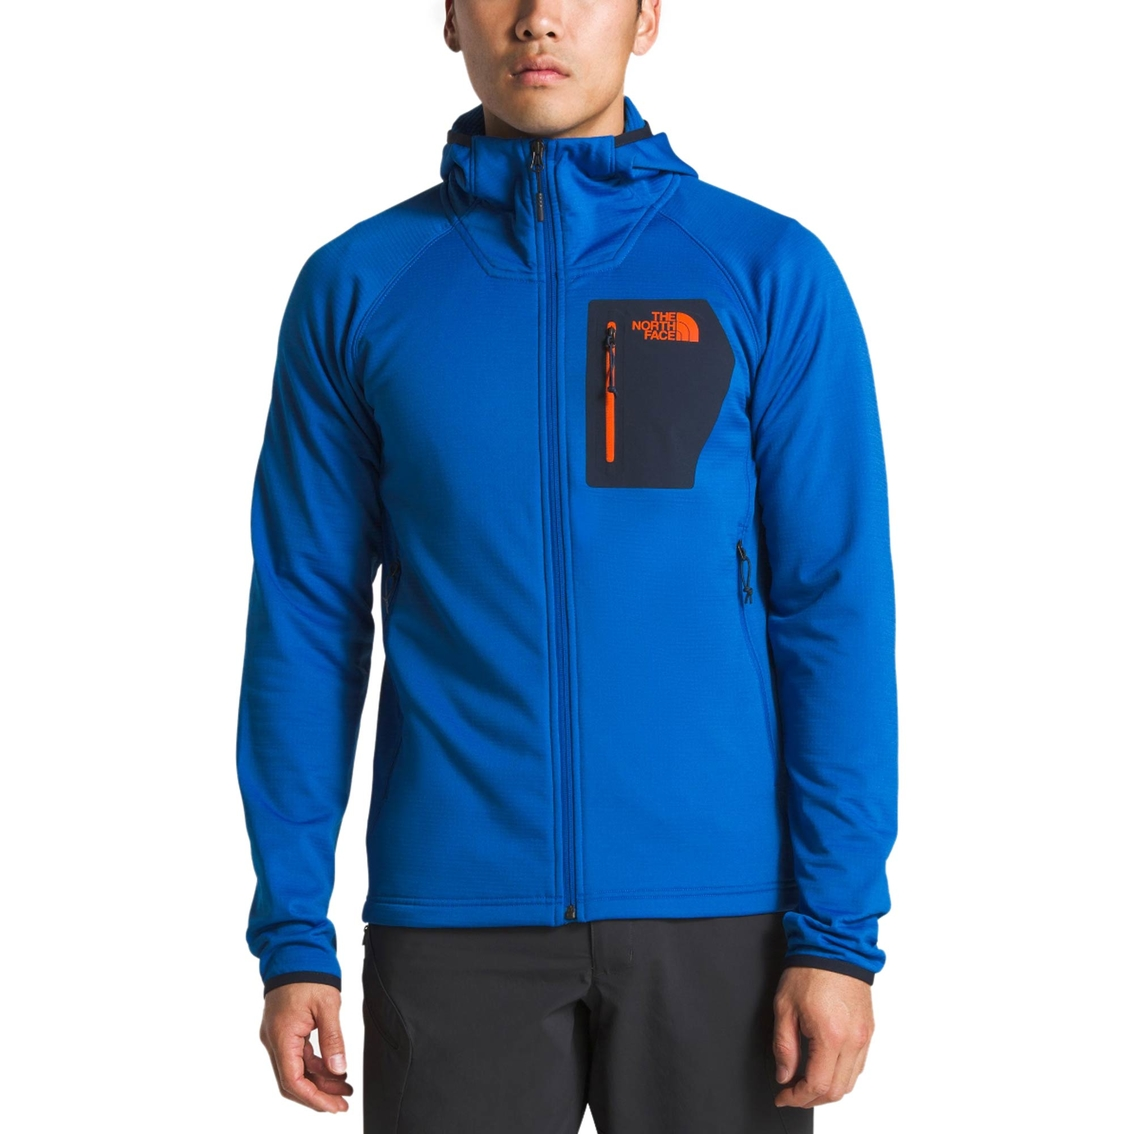 a22dab1fcaaf The North Face Borod Full Zip Hoodie